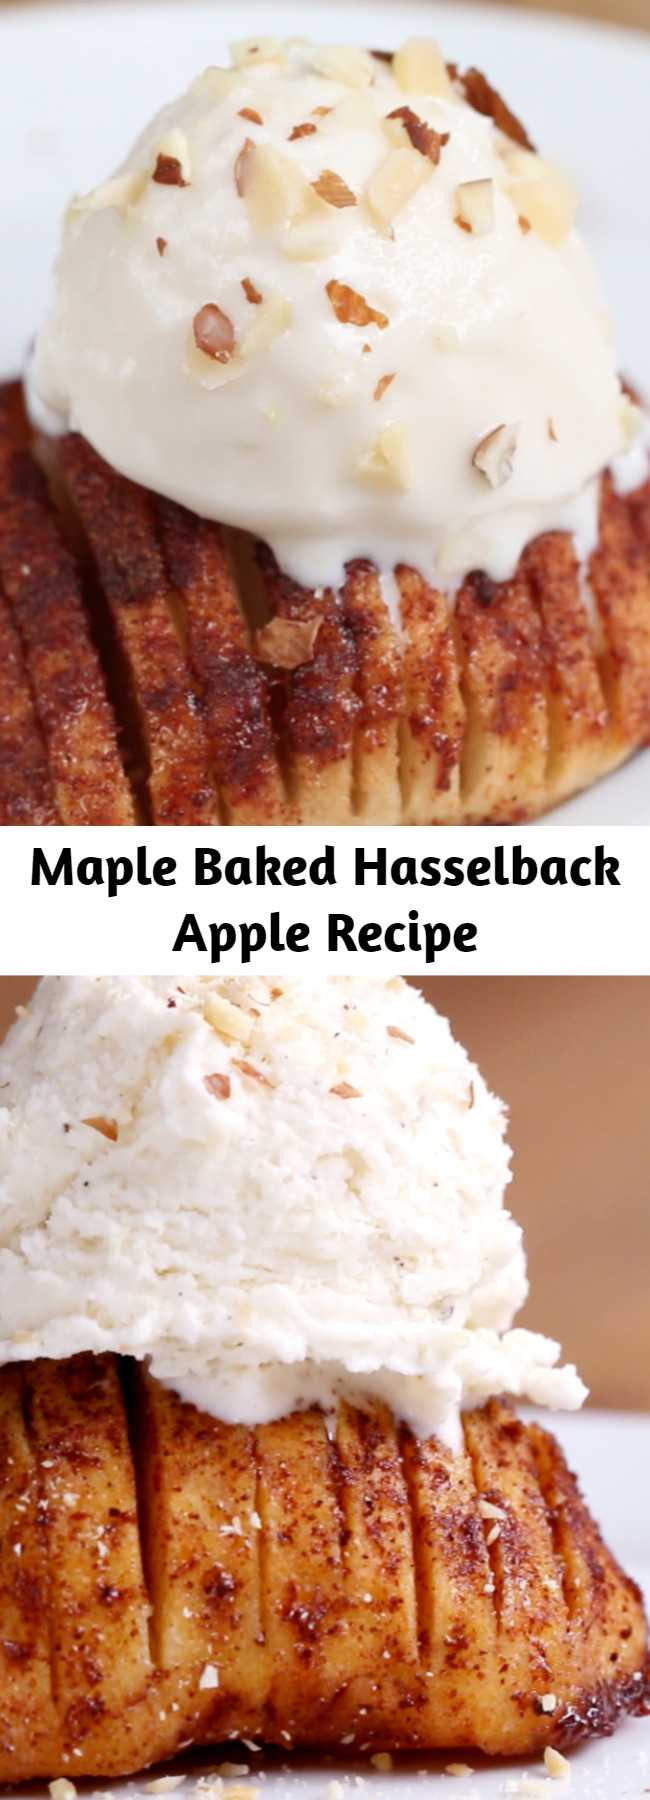 Maple Baked Hasselback Apple Recipe - You Should Make These Maple Baked Hasselback Apples For Dessert